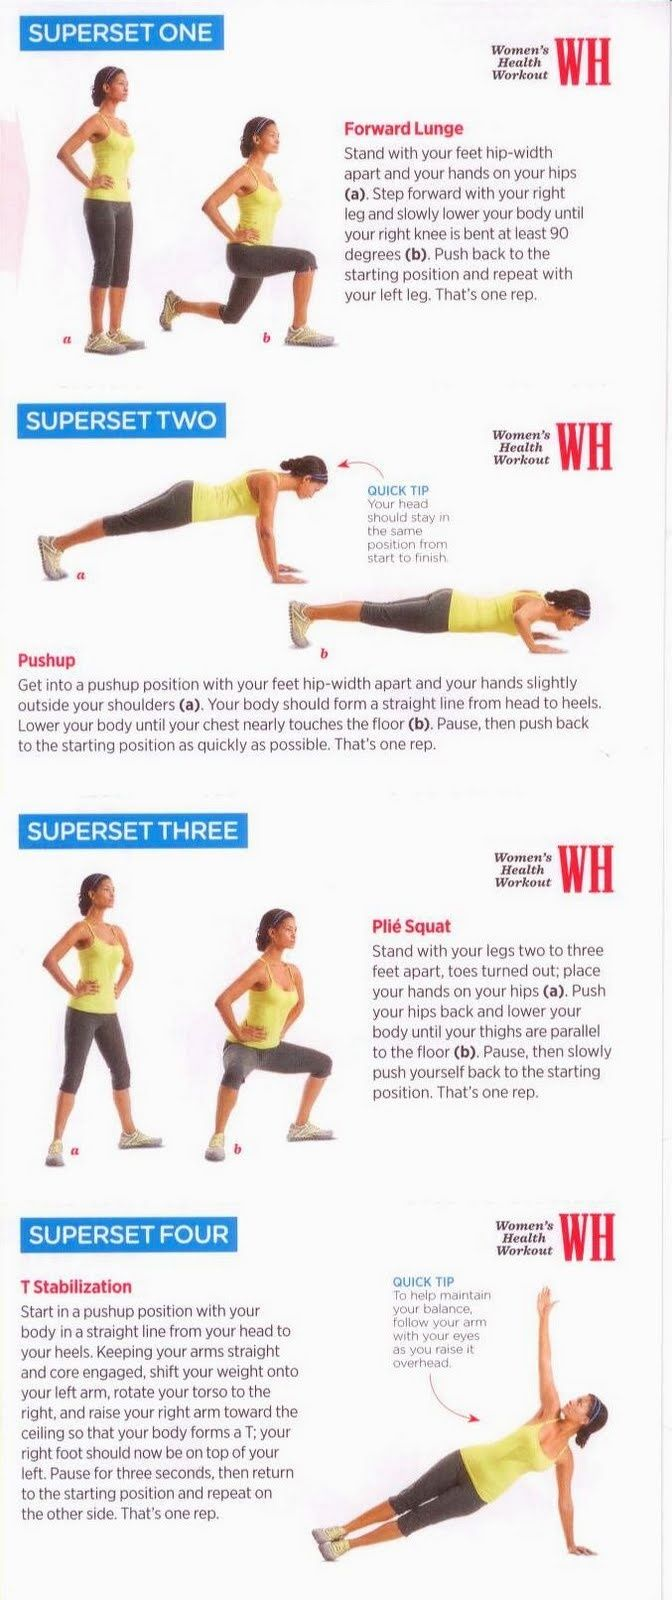 How To Get Abs Fast For Girls Workout Sheet Pinterest Superset Circuit Leg Up On Fitness Health And Training Ab Men